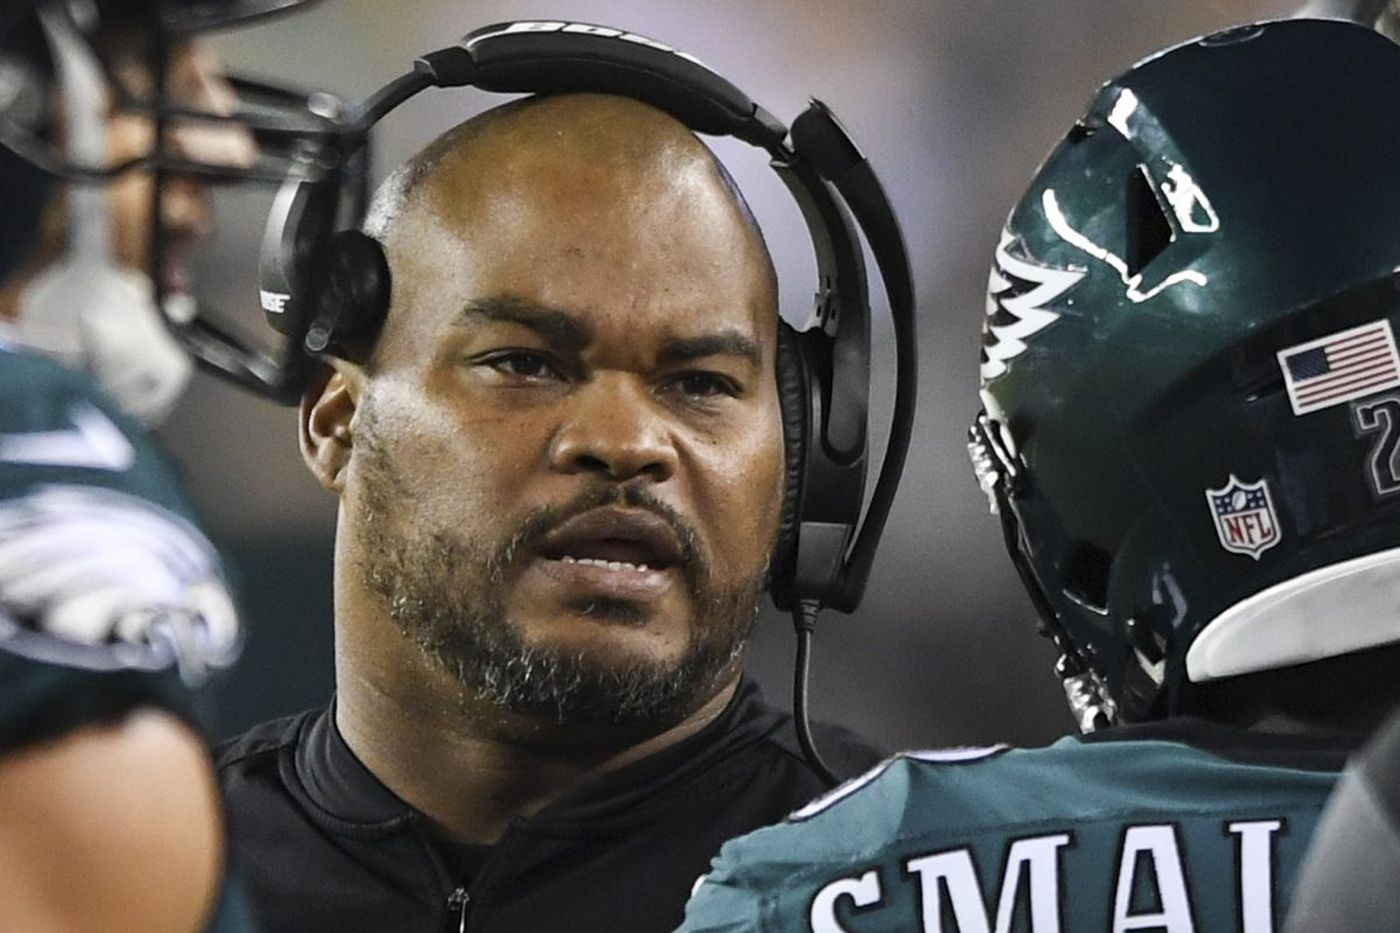 Duce Staley poised to break glass ceiling for black offensive coaches in NFL   Marcus Hayes